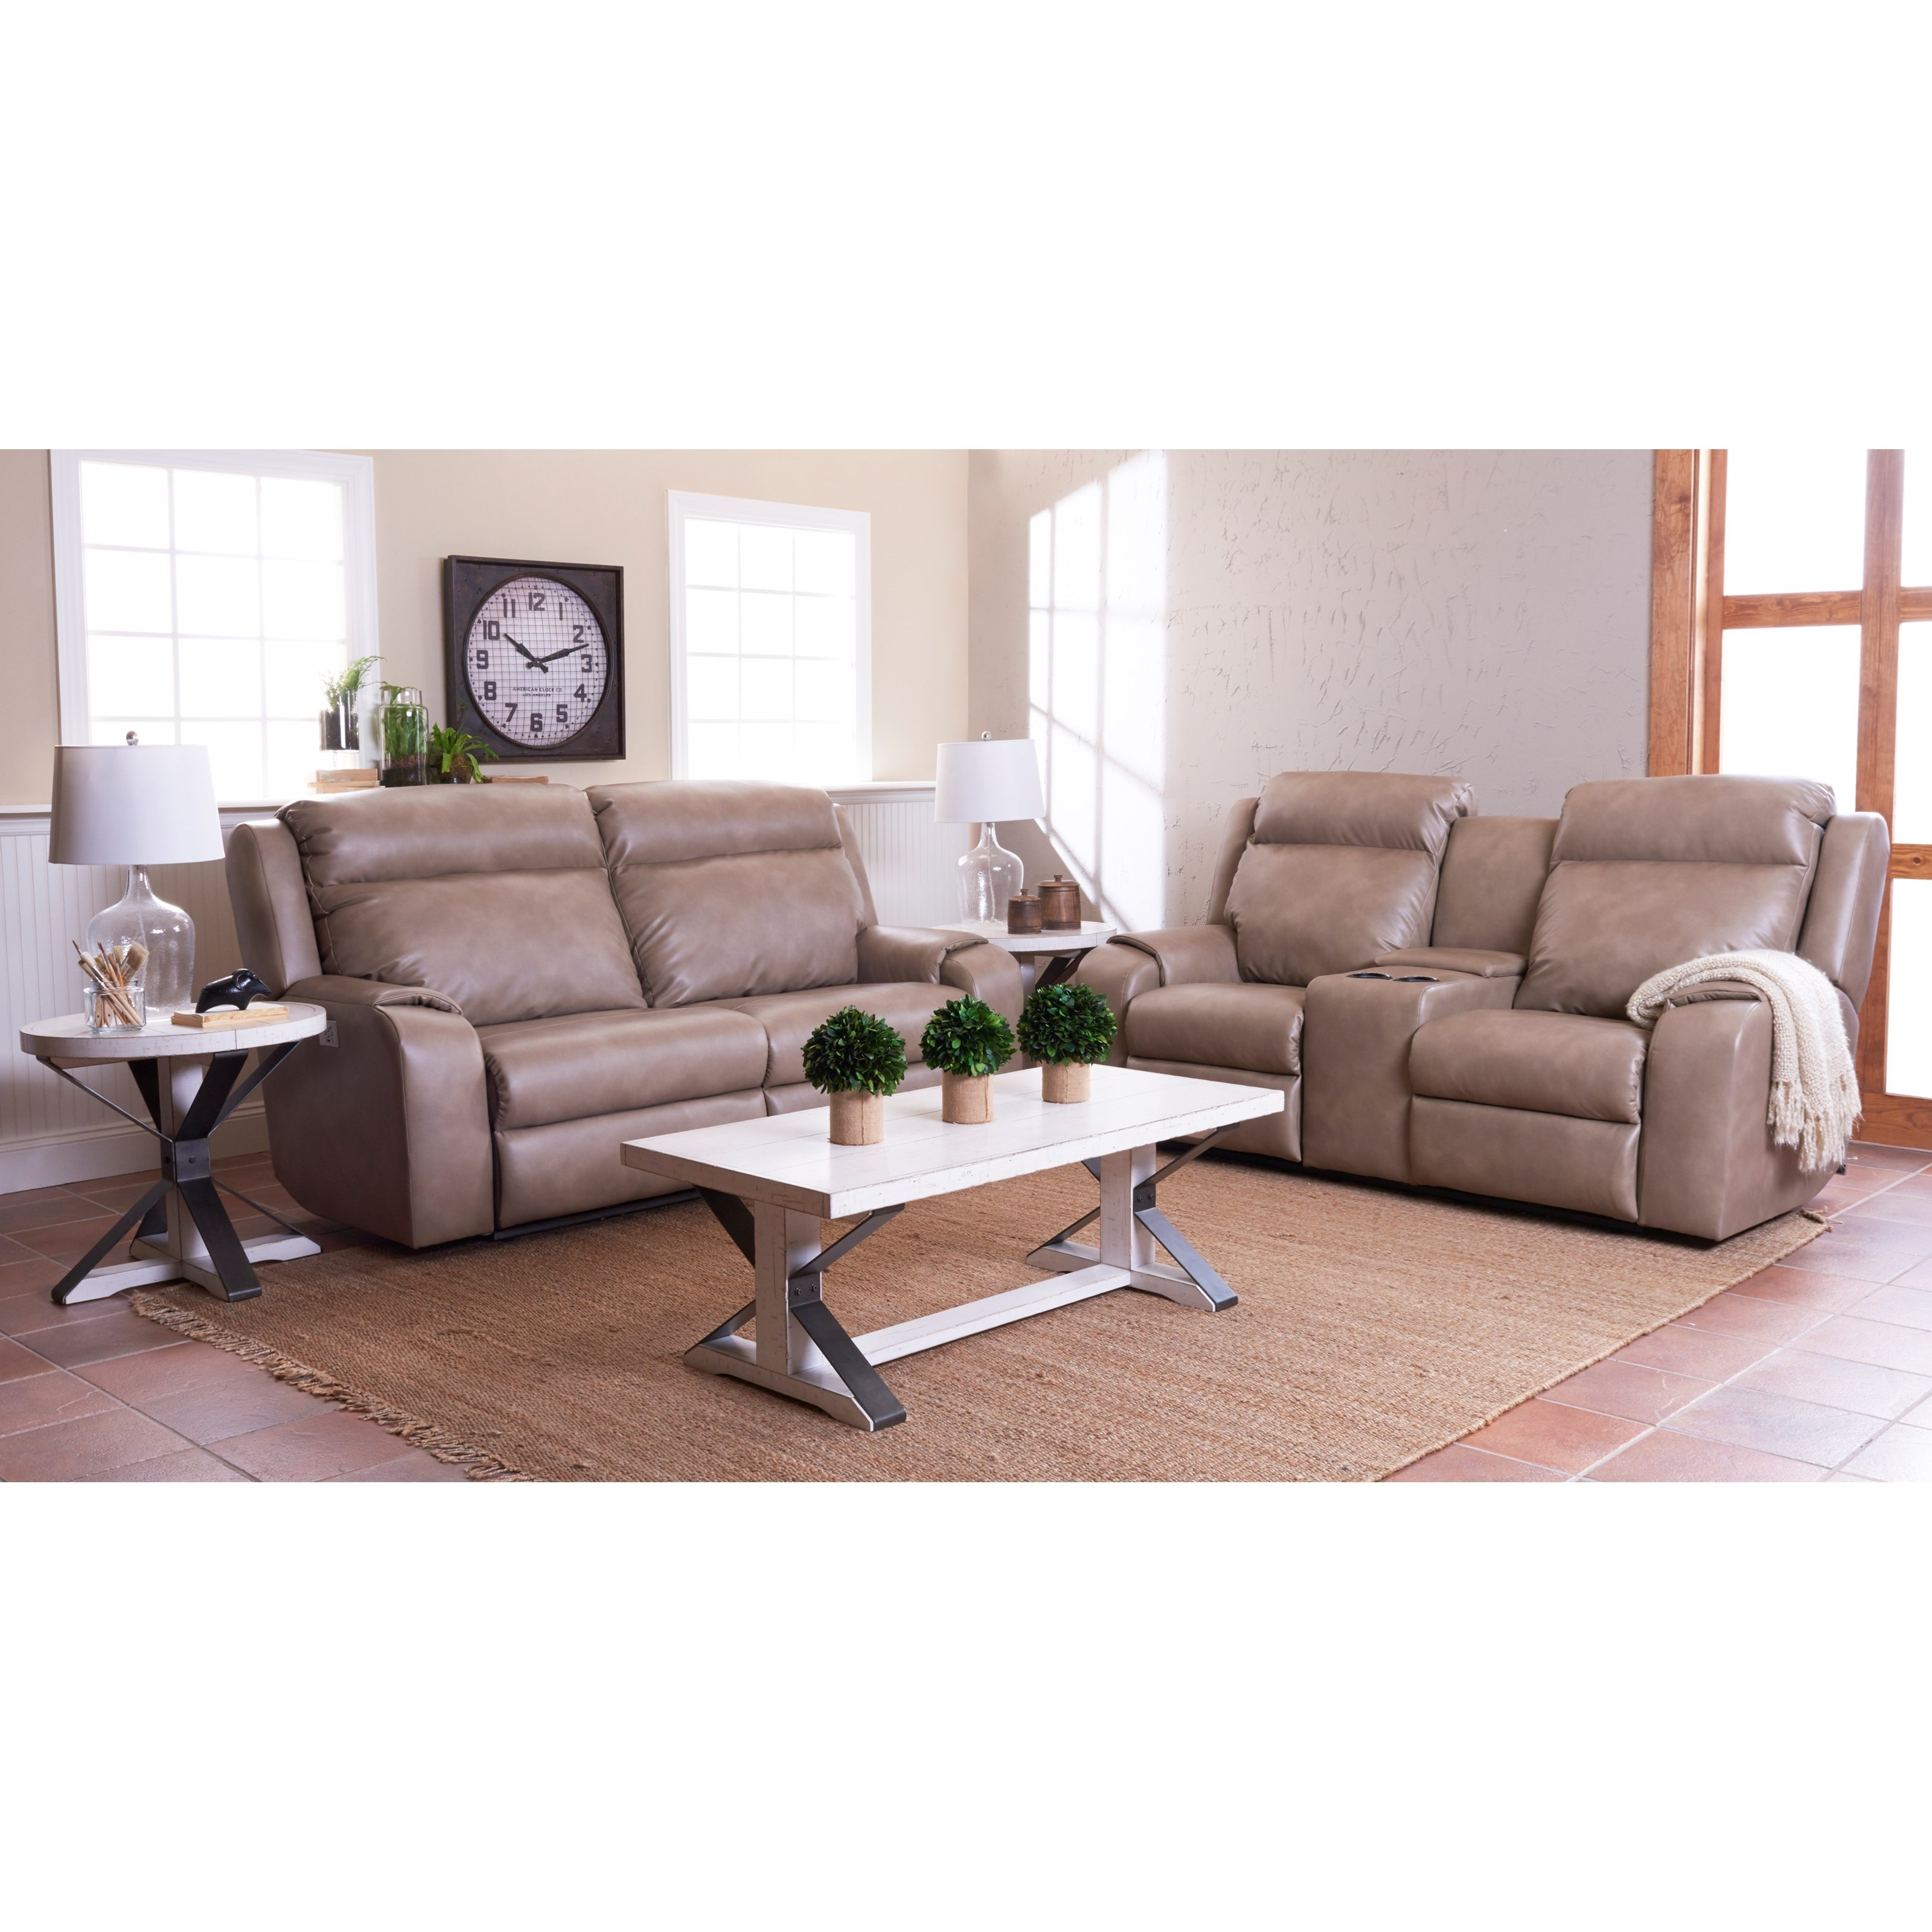 pomona sofa beautiful leather sets klaussner merlin two seat reclining with wide seats